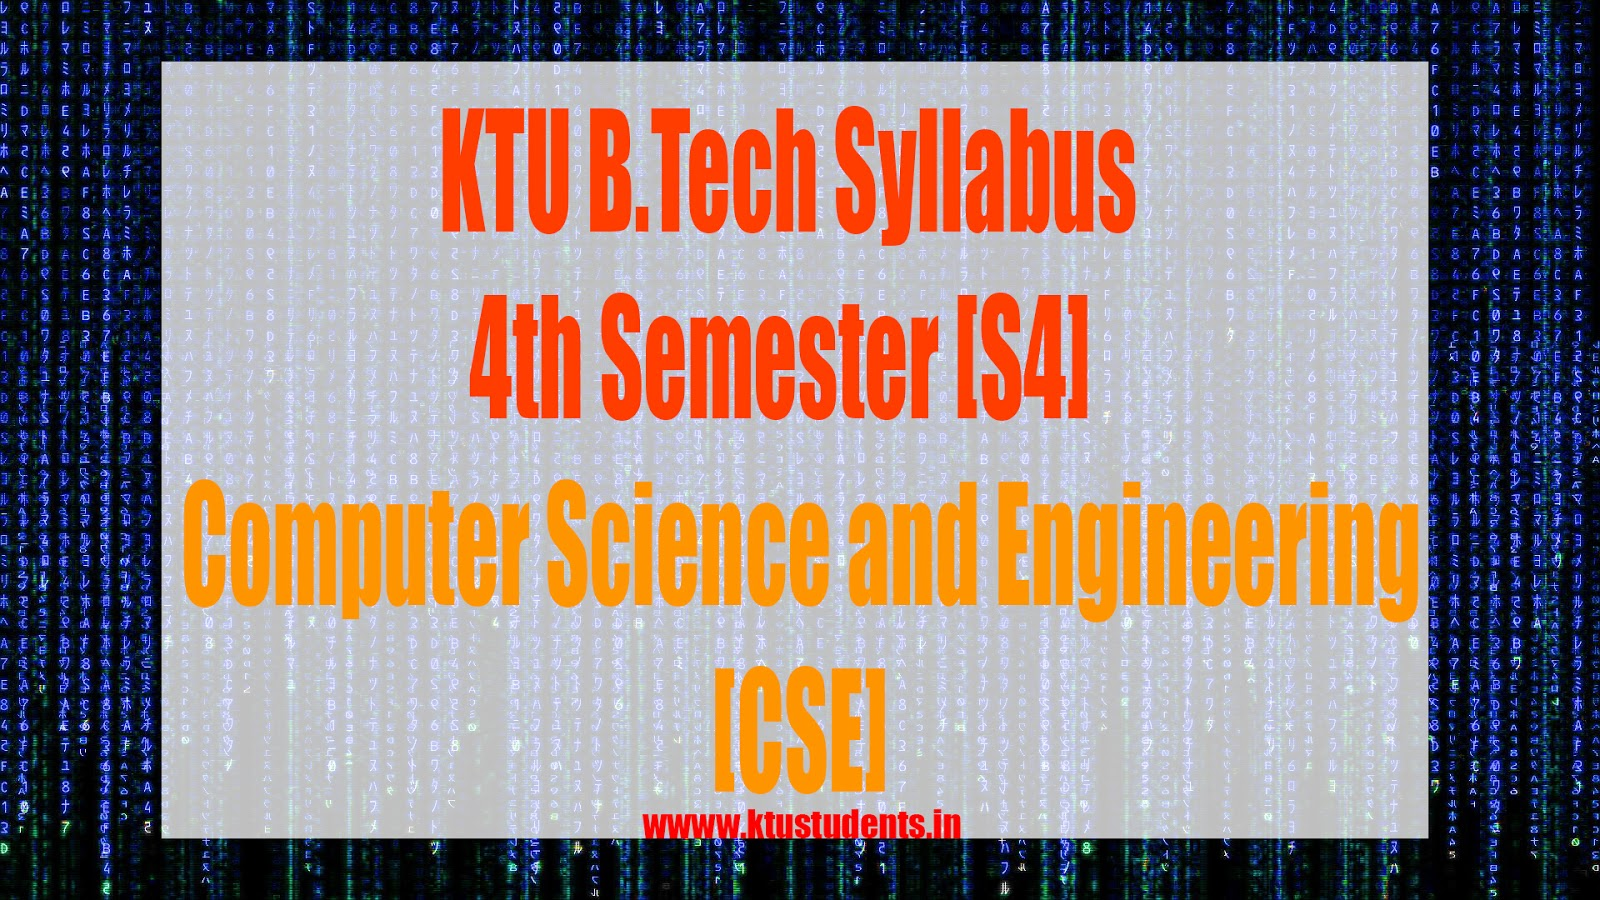 S4 Syllabus Computer Science and Engineering [CSE] | KTU Students